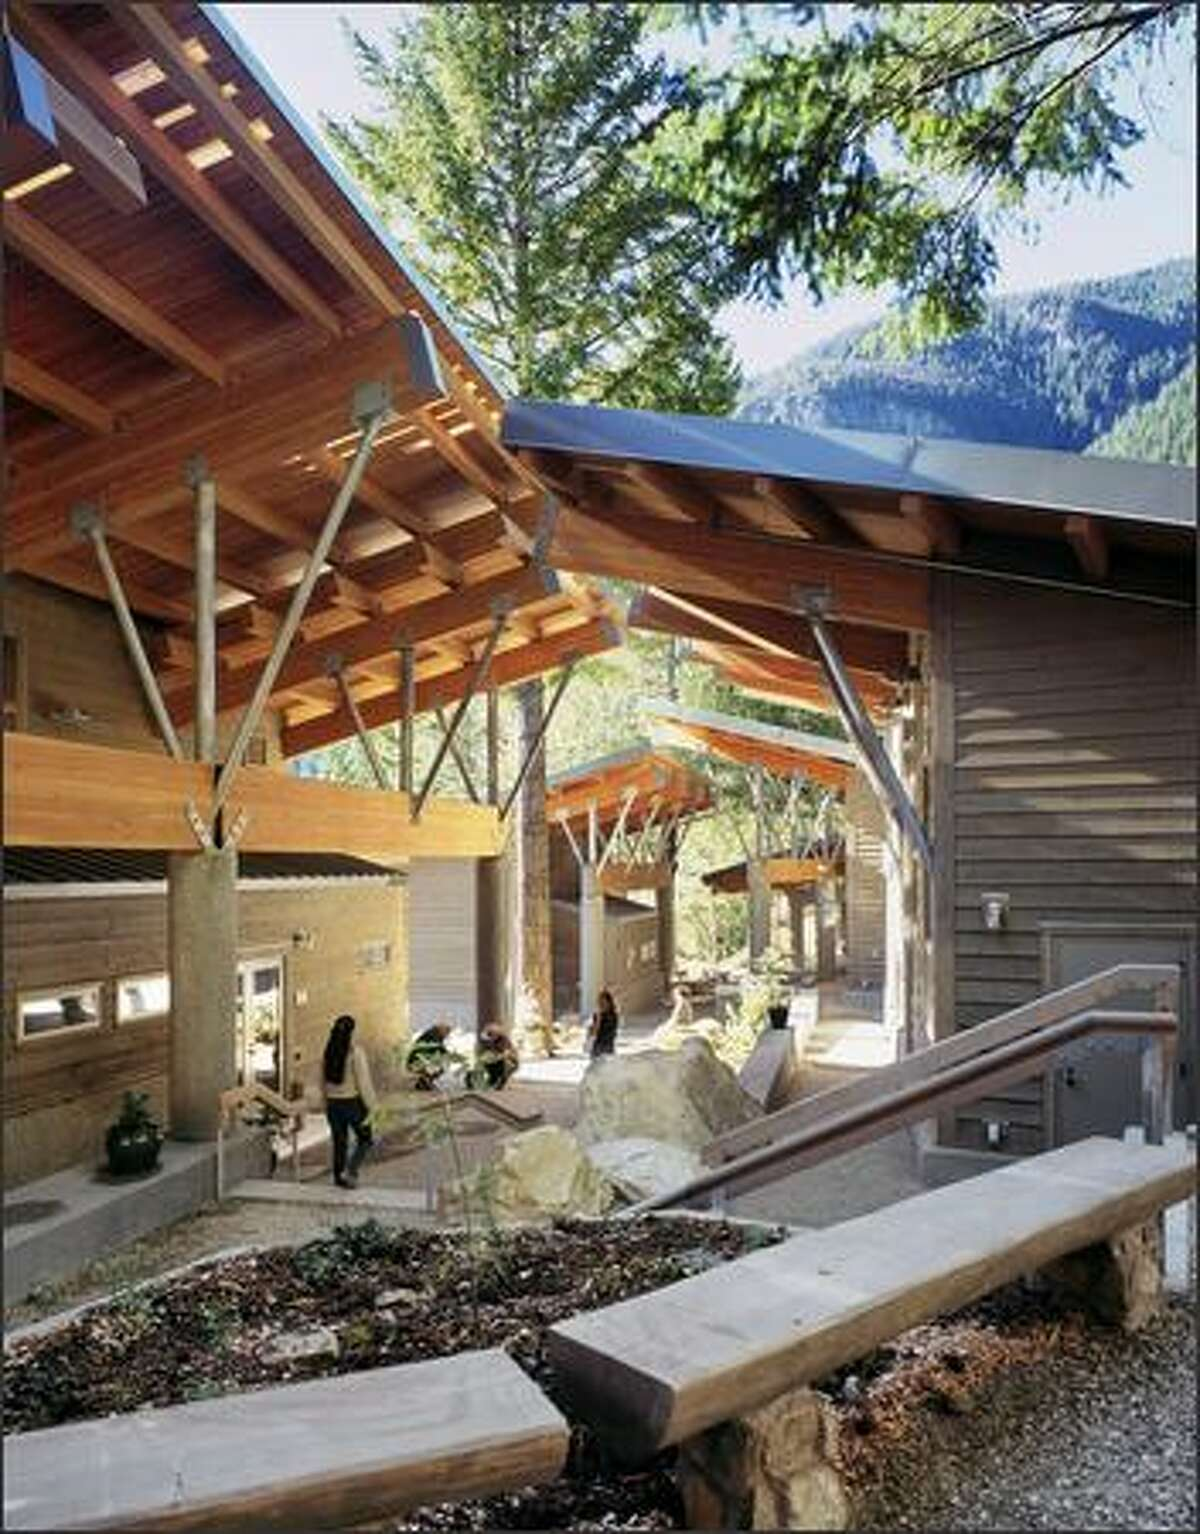 The North Cascades Environmental Learning Center rooflines thrust into the air, like tree canopies jostling for scraps of sky. (HKP ARCHITECTS PHOTOS)